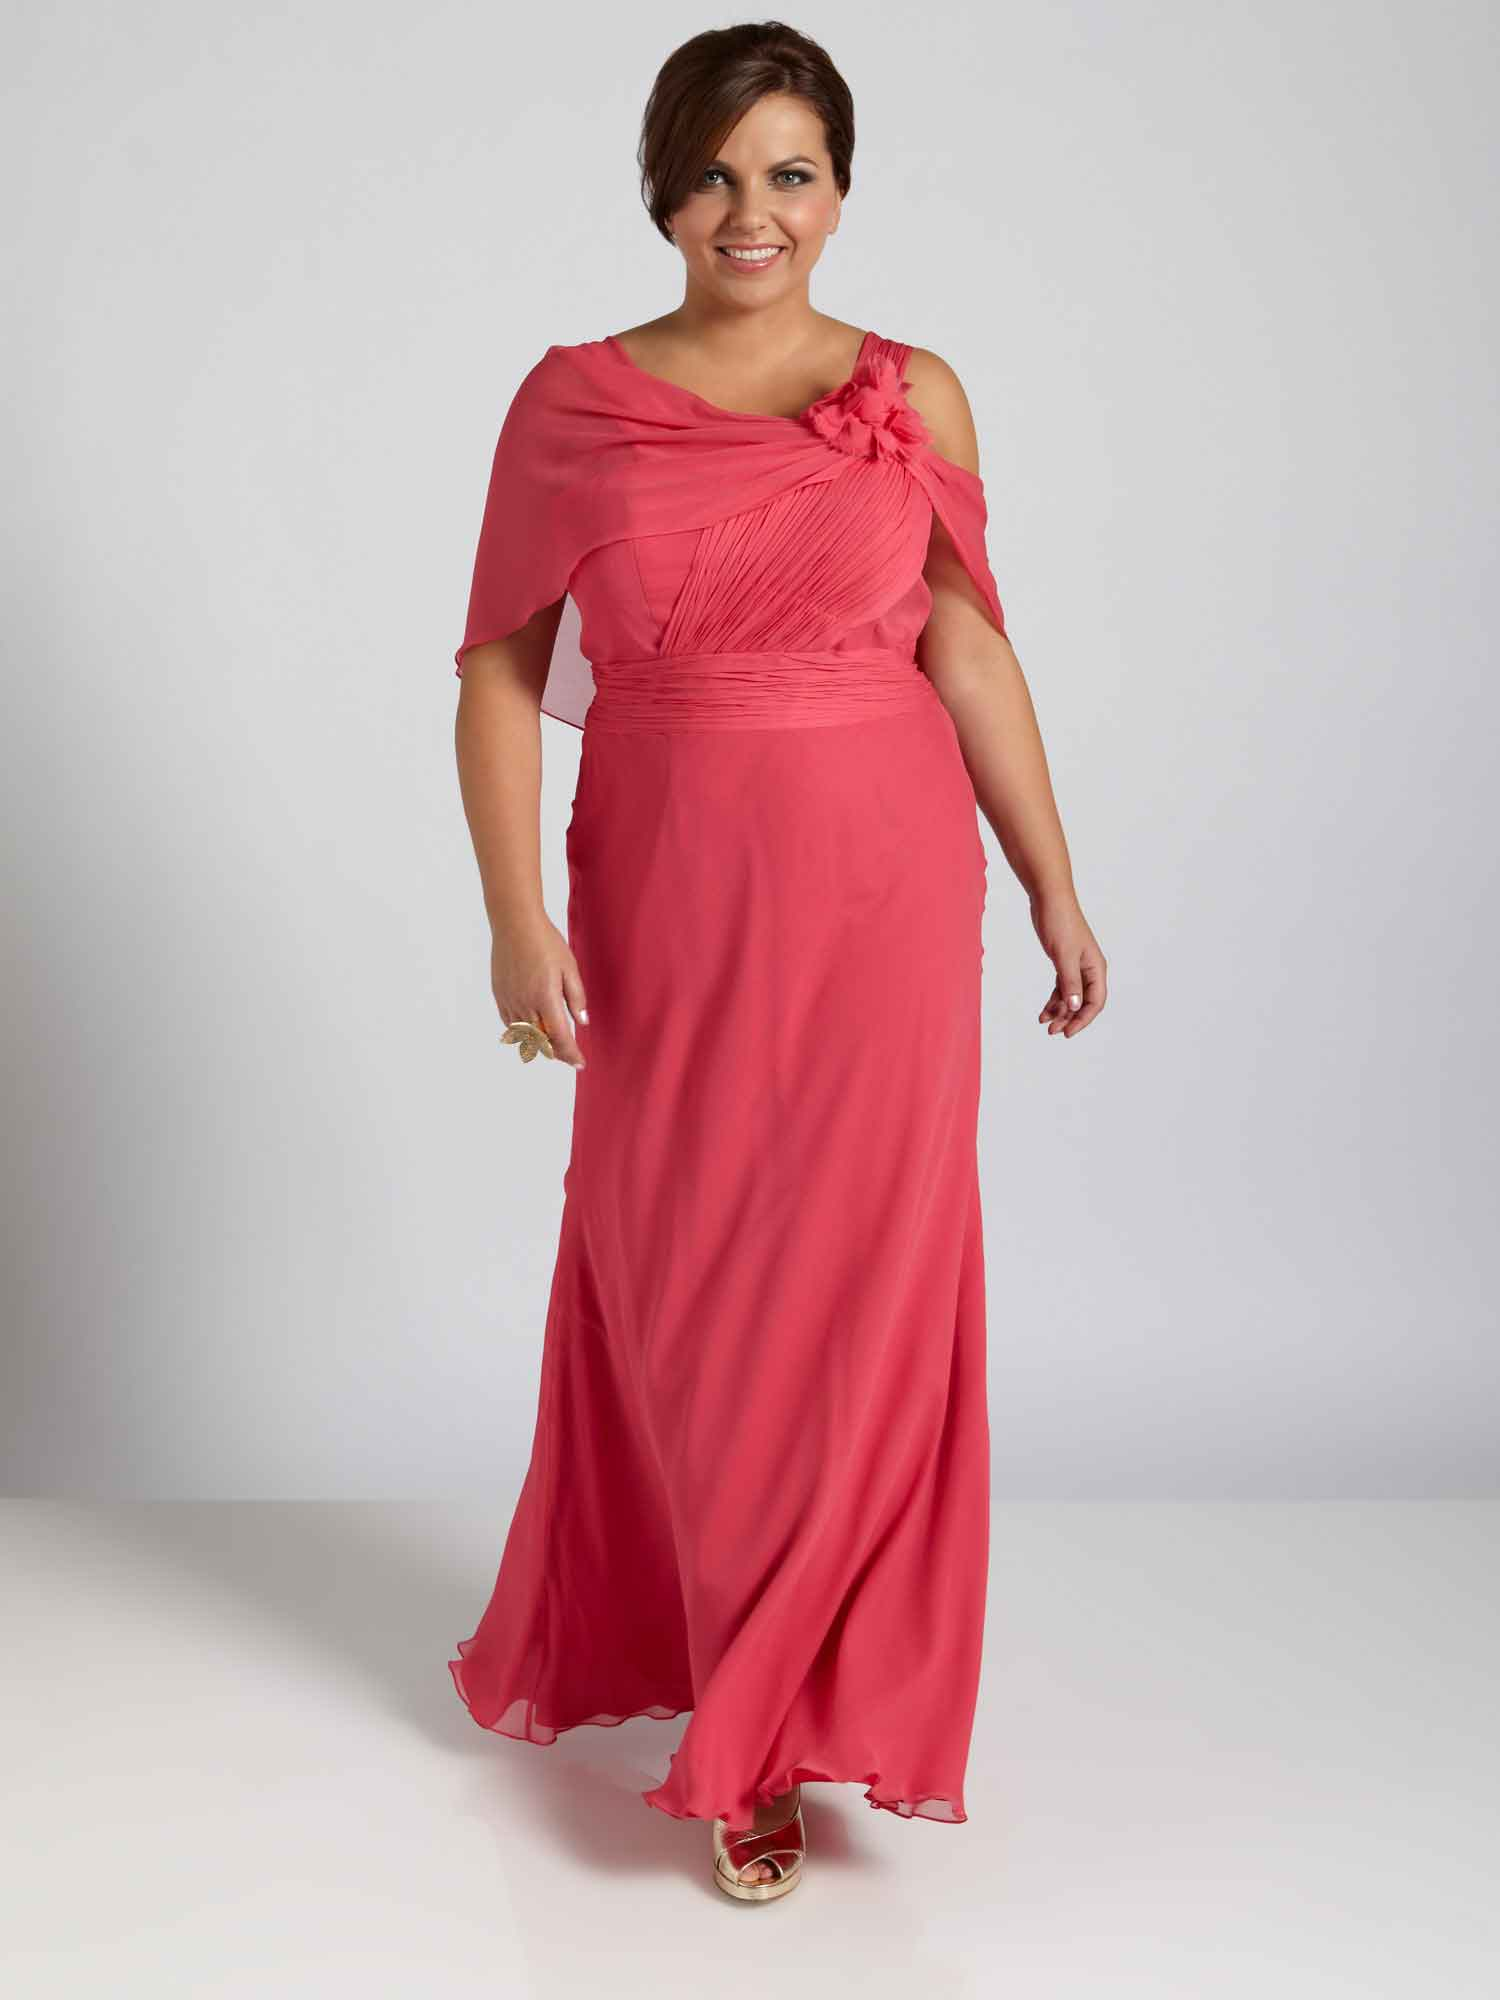 Plus Size Mother The Bride Wear Long Dresses line